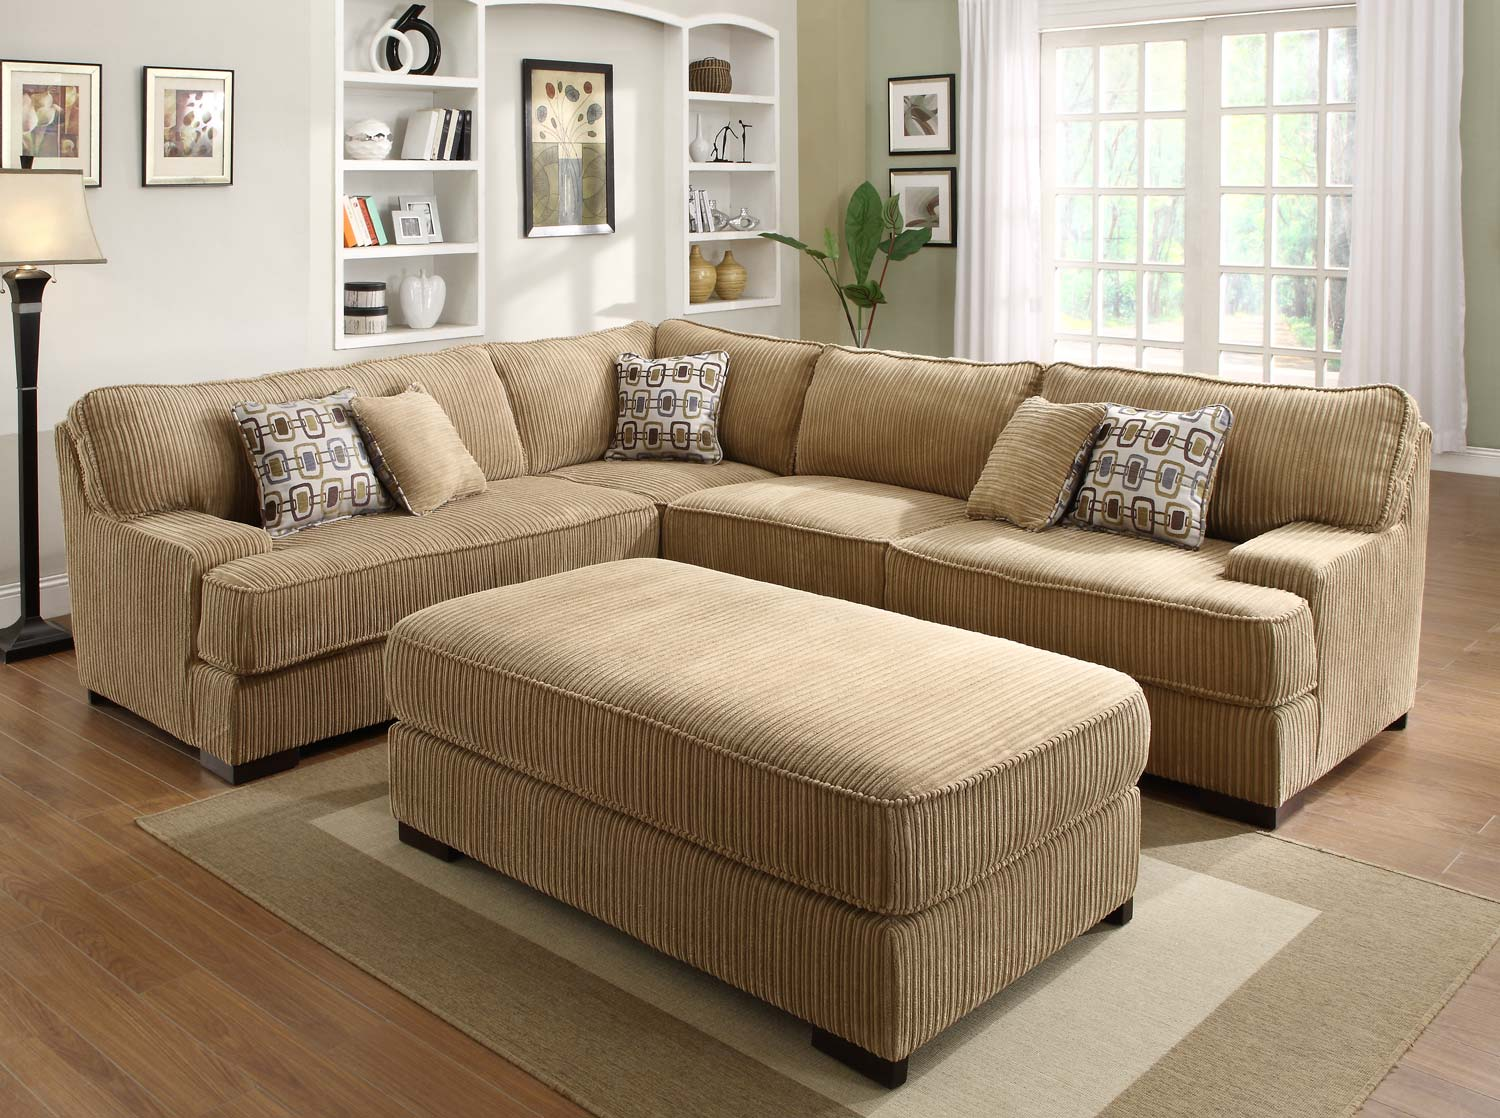 homelegance minnis sectional sofa set brown u9759 sect On sectional sofas